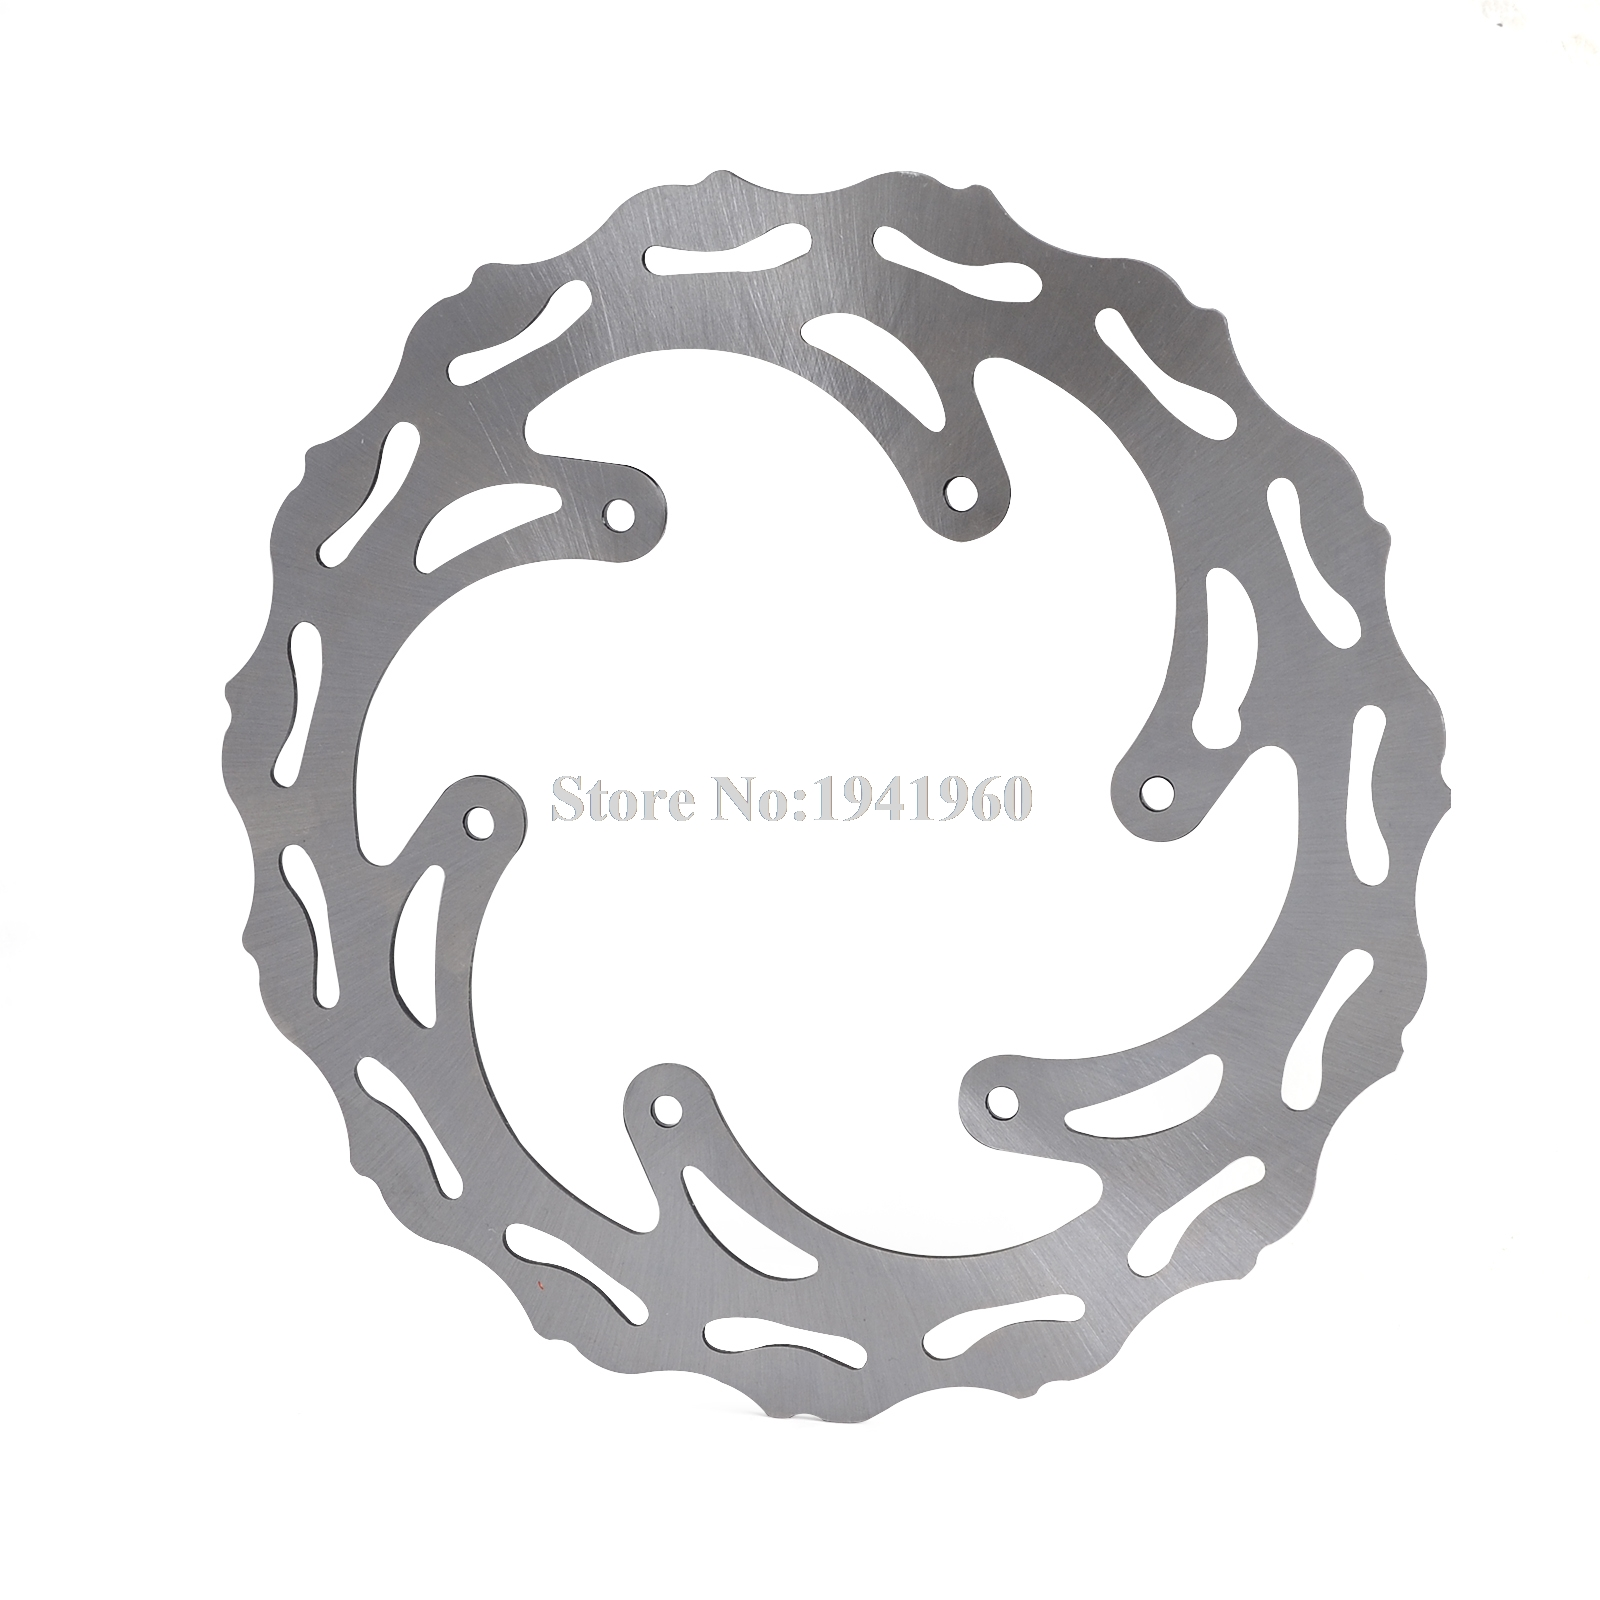 Motorcycle Front Brake Disc Rotor For KTM 125 SX XC 250 EXC 300 400 450 500 525 530 EXCE EXCF EXCR SXF 2007-2016 front brake disc rotor for ktm 380 exc 1998 1999 2000 2001 2002 sx mxc 1998 2001 400 egs exc g xc w 2007 2008 2009 07 08 09